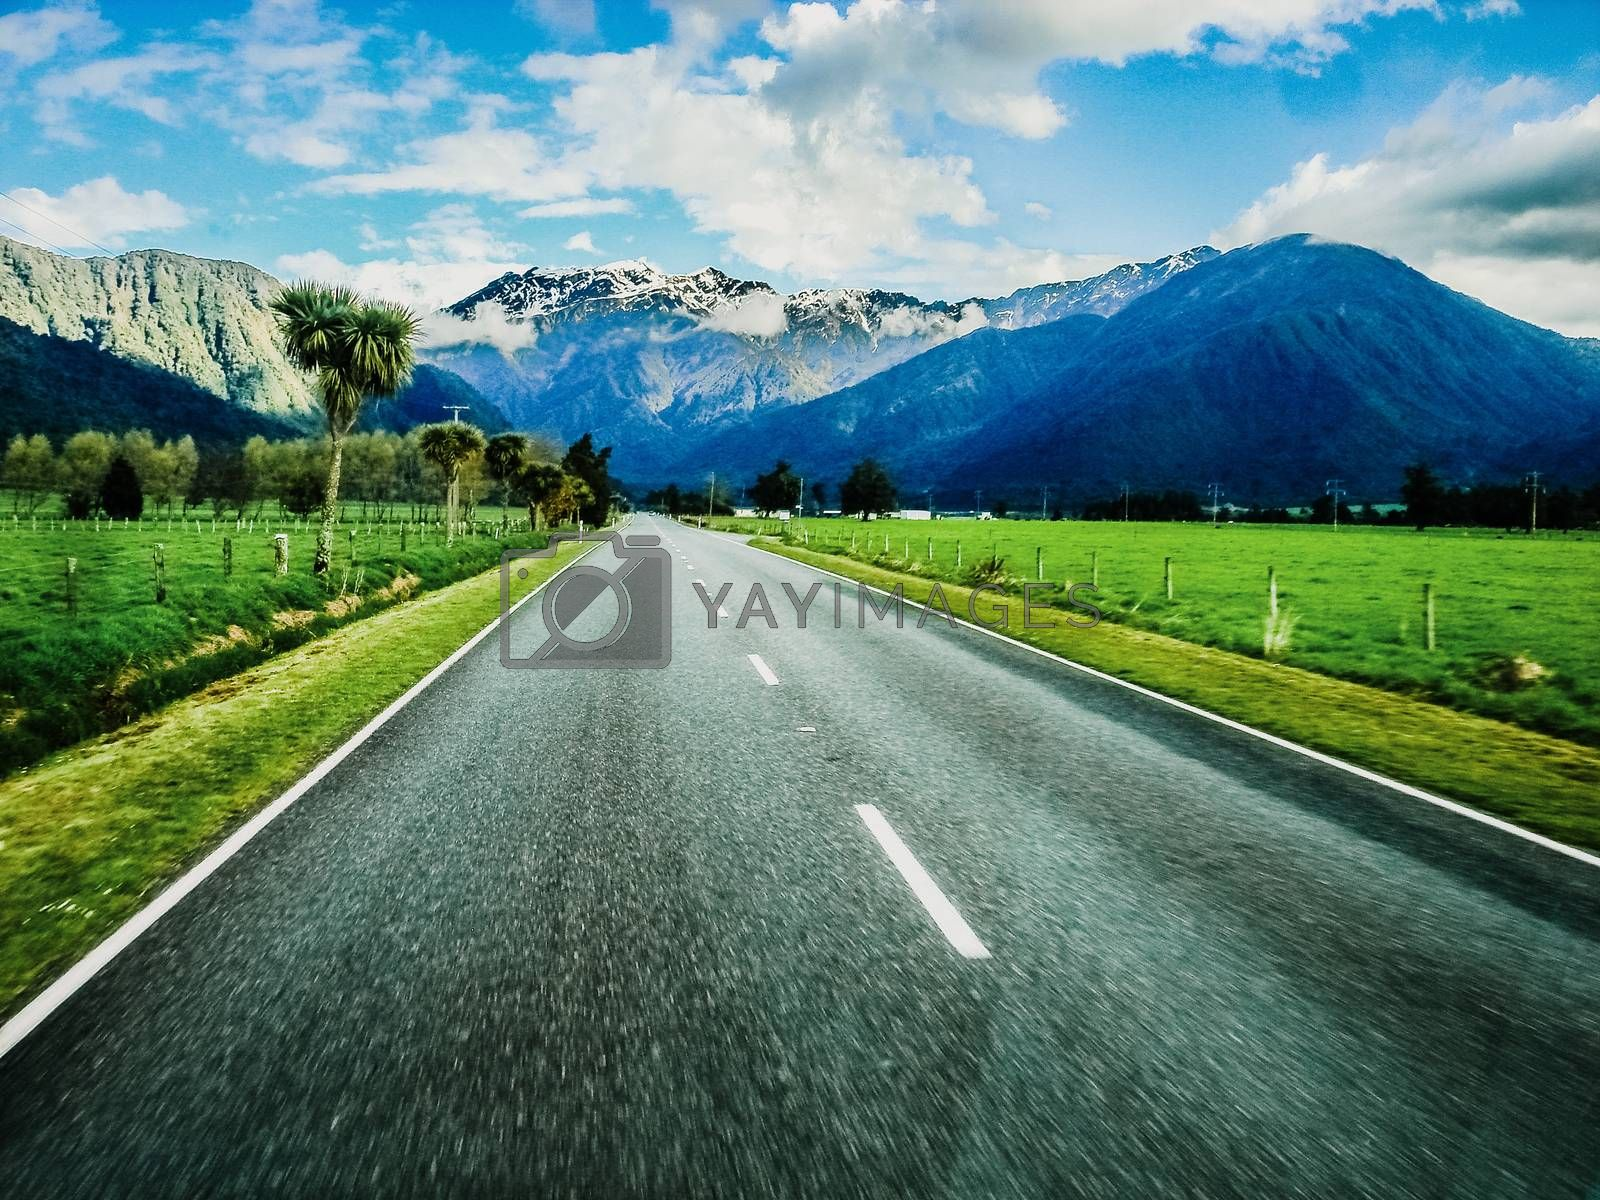 Mountain road with colorful landscape of high snowy summits to live adventures by car, unfocused edges to give impression of speed when driving.